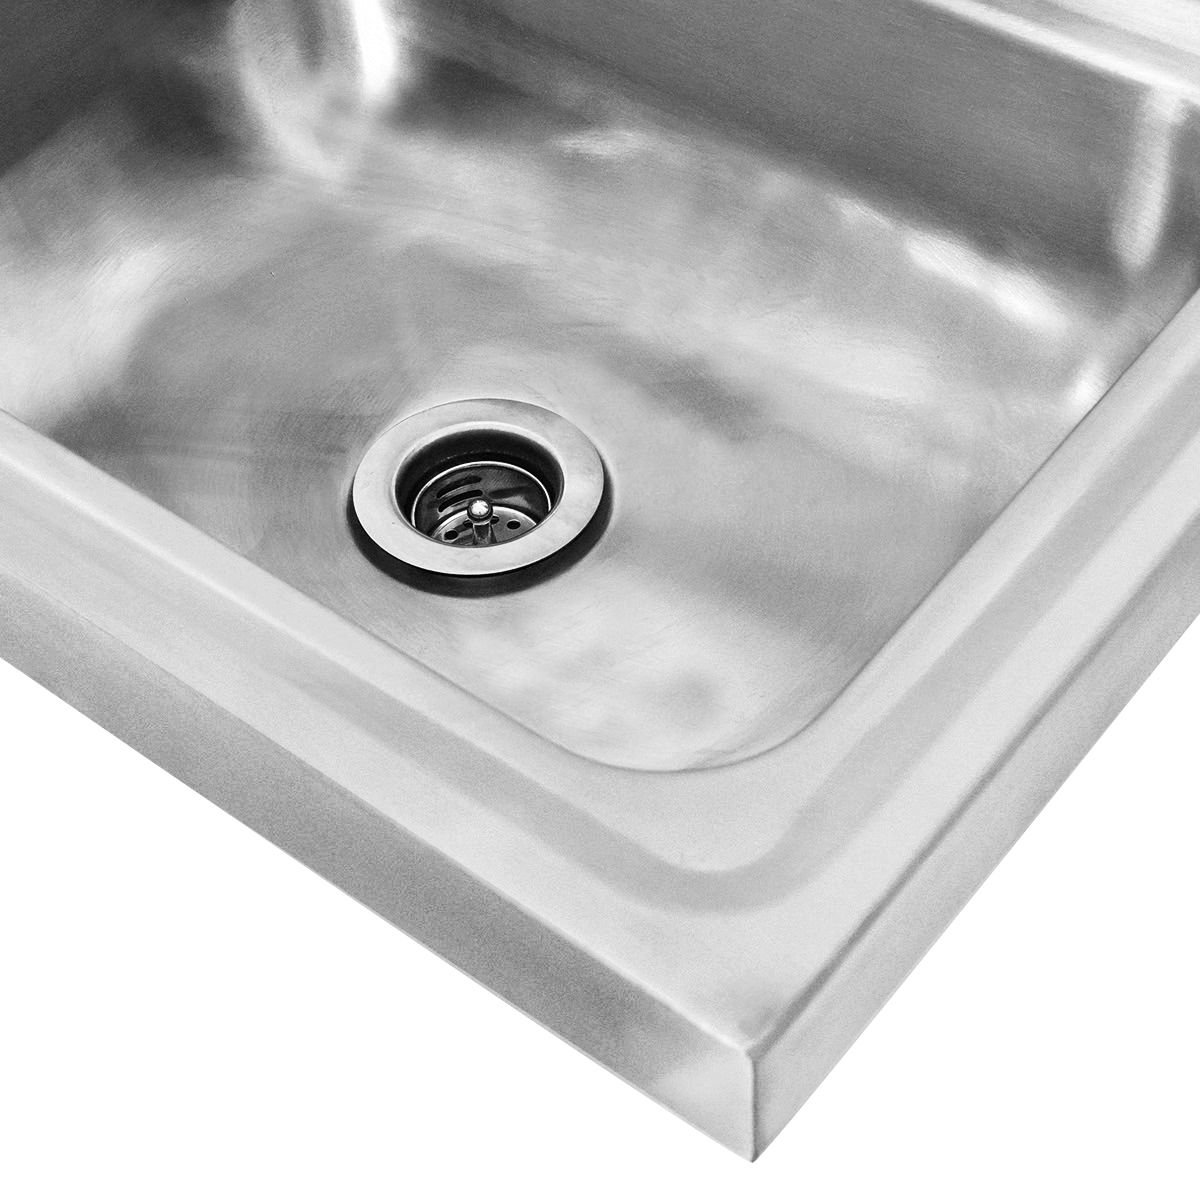 Giantex Stainless Steel Hand Wash Sink Wall Mount Commercial Kitchen Heavy Duty With Faucet by Giantex (Image #4)